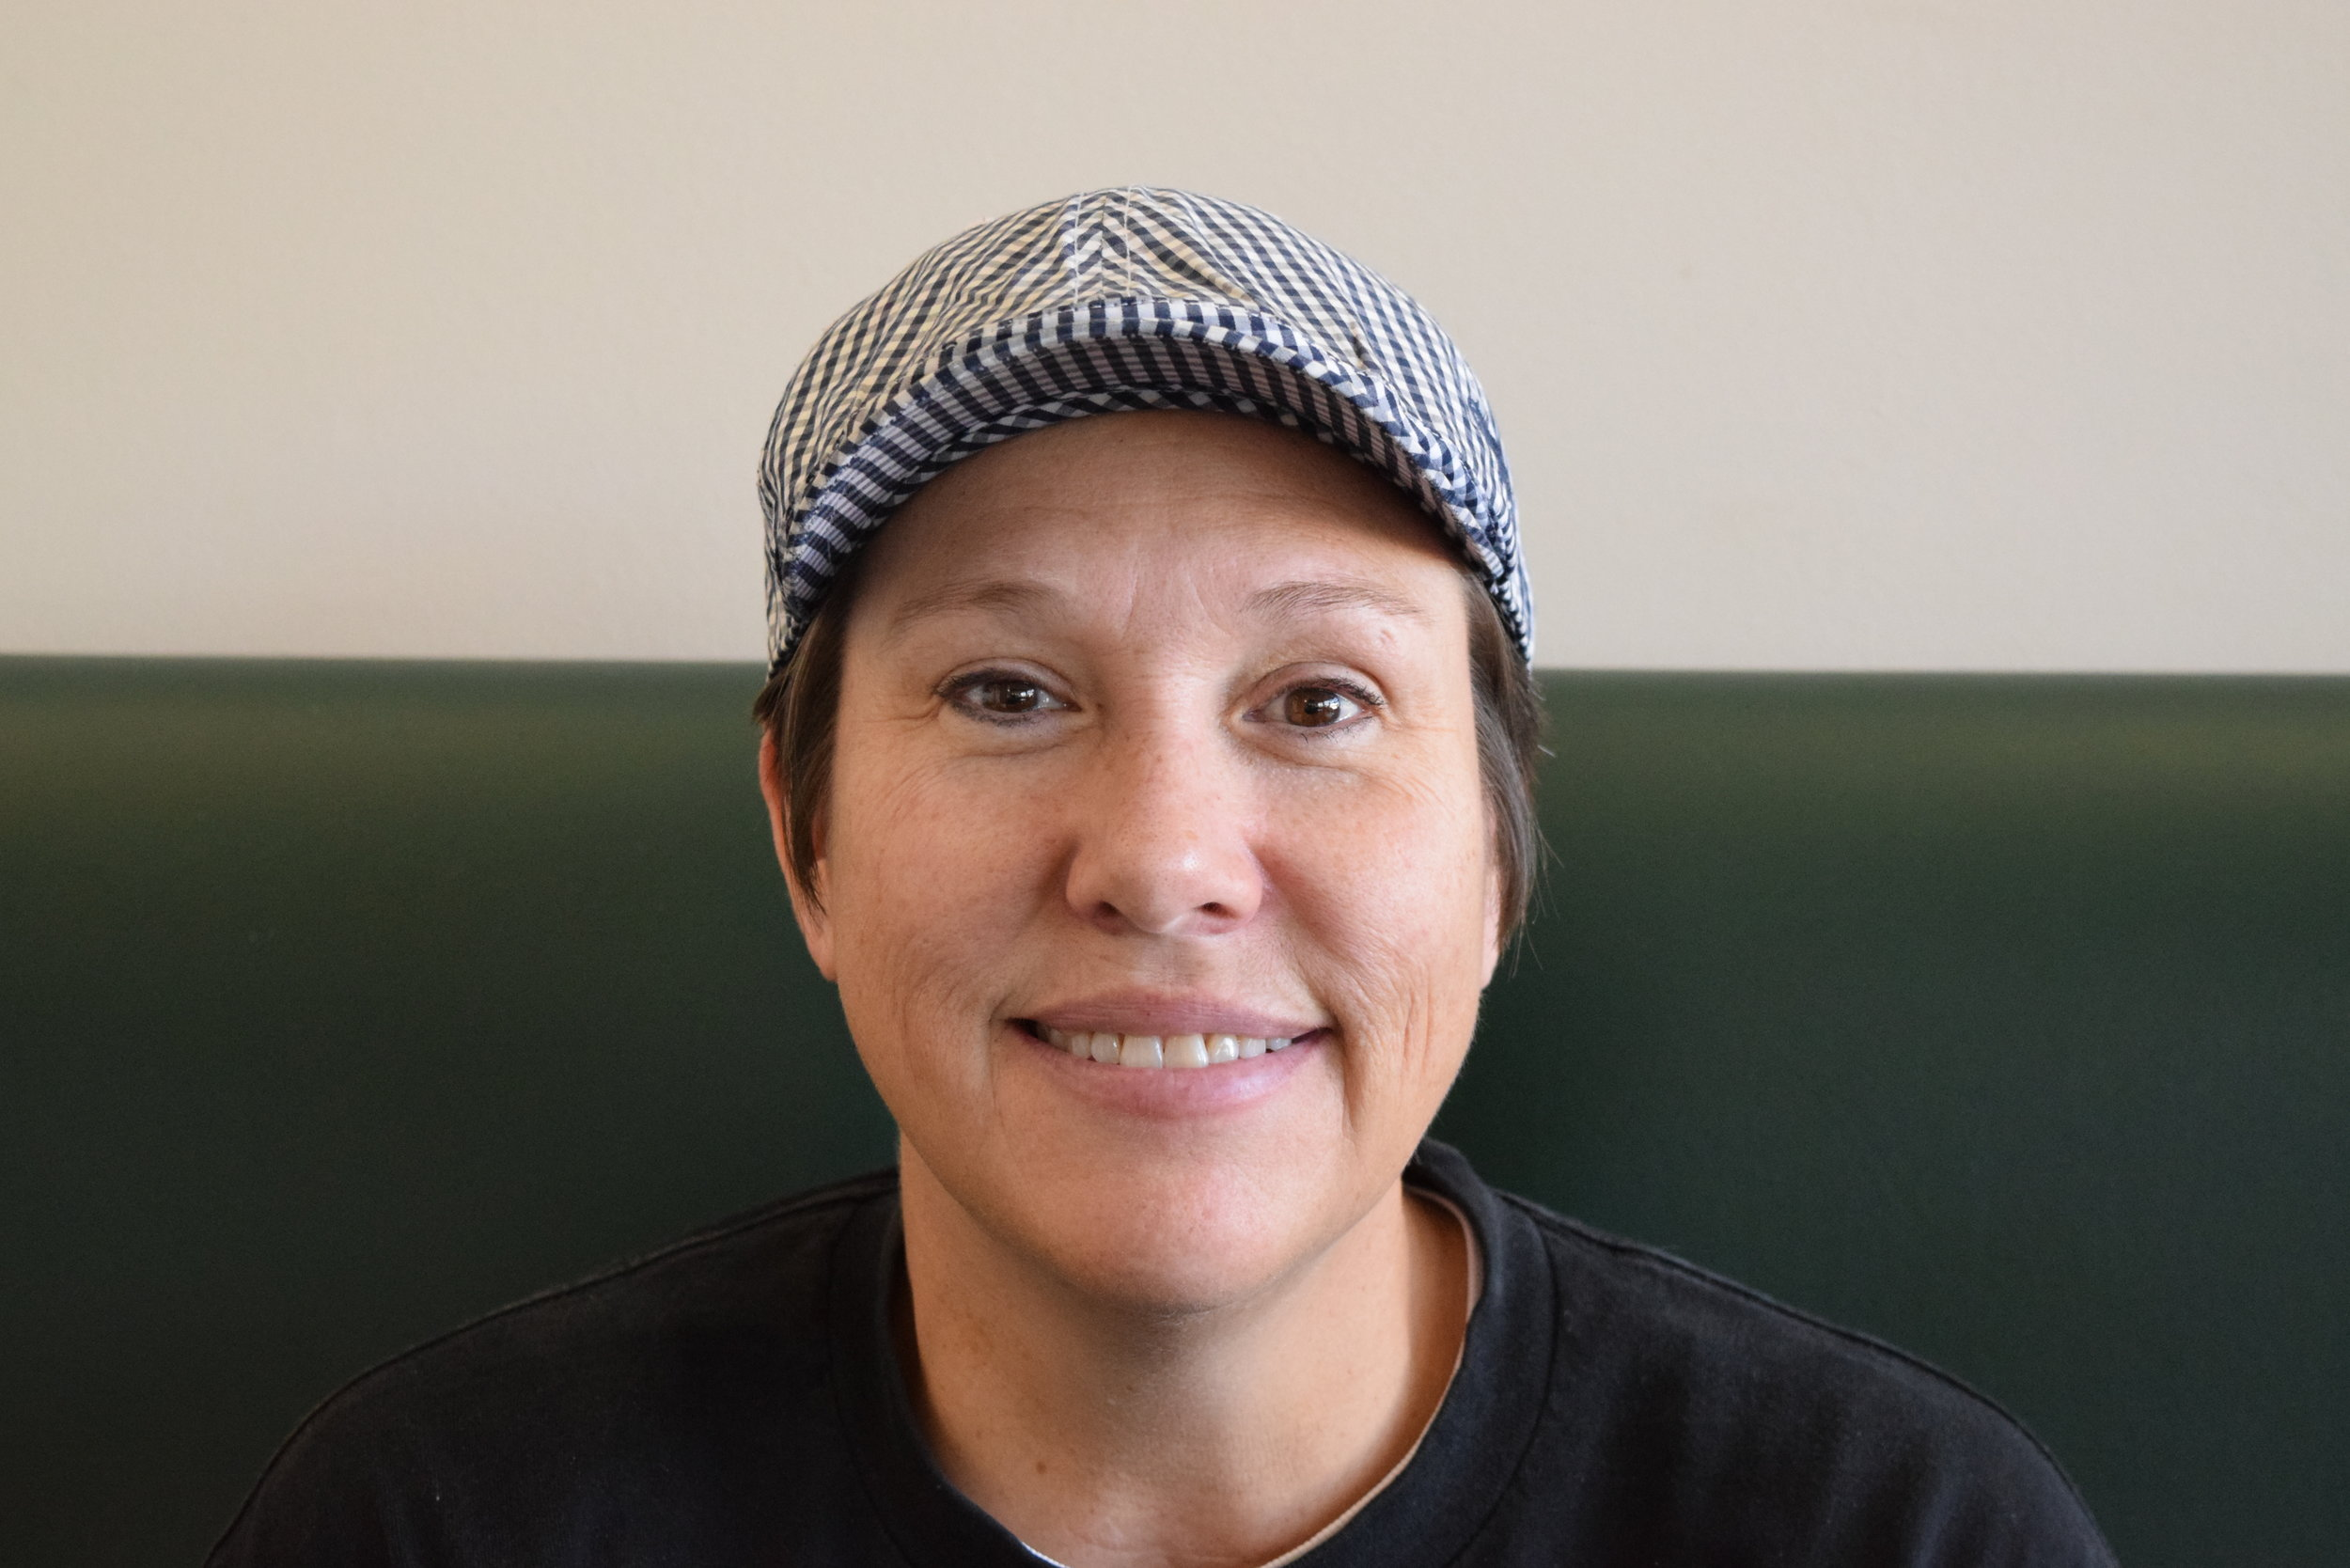 Taya Kaufenberg who managed the Cafe under Weivoda's ownership, will continue to do so for O'Neill and his team.